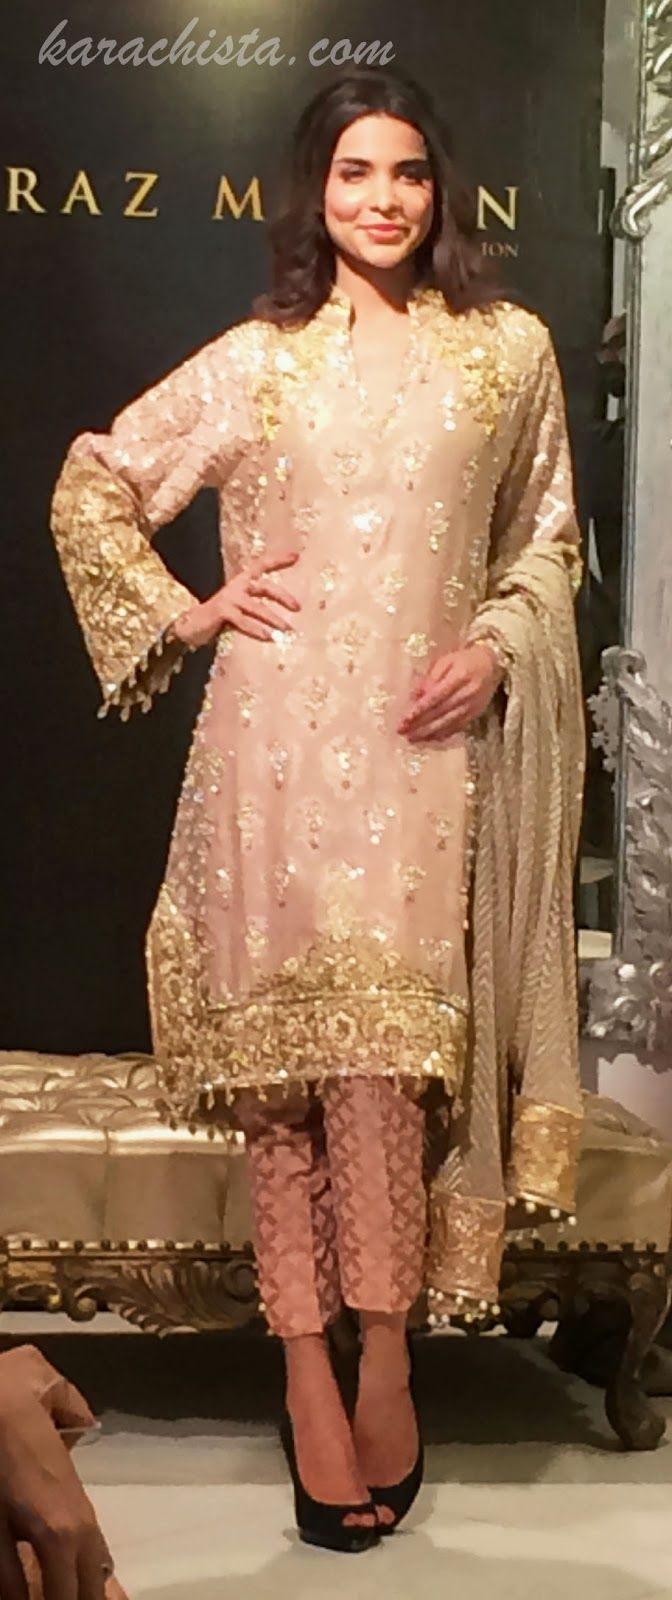 Get it at amani www.facebook.com/2amani #pakistani #Indian #bridal #asia #shalwar #kameez #2016 #dresses #fashion Indian Wedding Bridal Lehenga Photos #lehenga #choli #indian #hp #shaadi #bridal #fashion #style #desi #designer #blouse #wedding #gorgeous #beautiful #bestdressed #abaira #hsy #pakistaniweddings #pakistanifashion #gorgeous #model #pakistan #wedding #clothes #pakcouture #pakistanfashion #desi #bridal #karachi #lahore #islamabad #dubai #london #newyork #desifashion #desicouture…